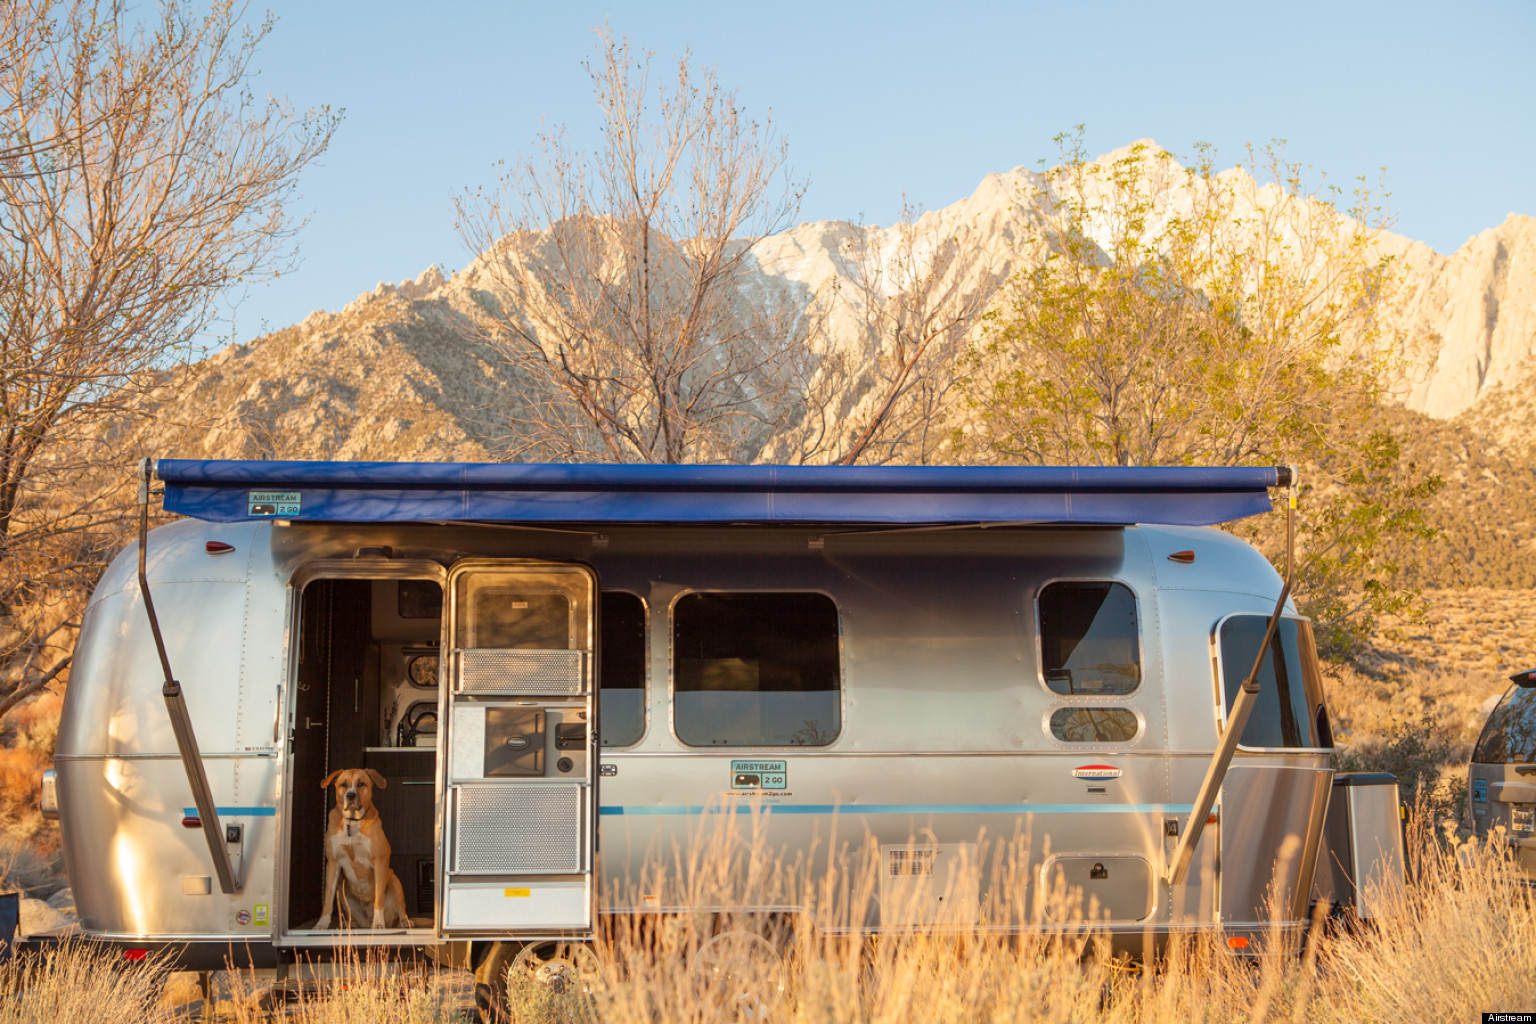 National Rent To Own Com: Airstream 2 Go Offers RV Rentals In Lovely Trailers